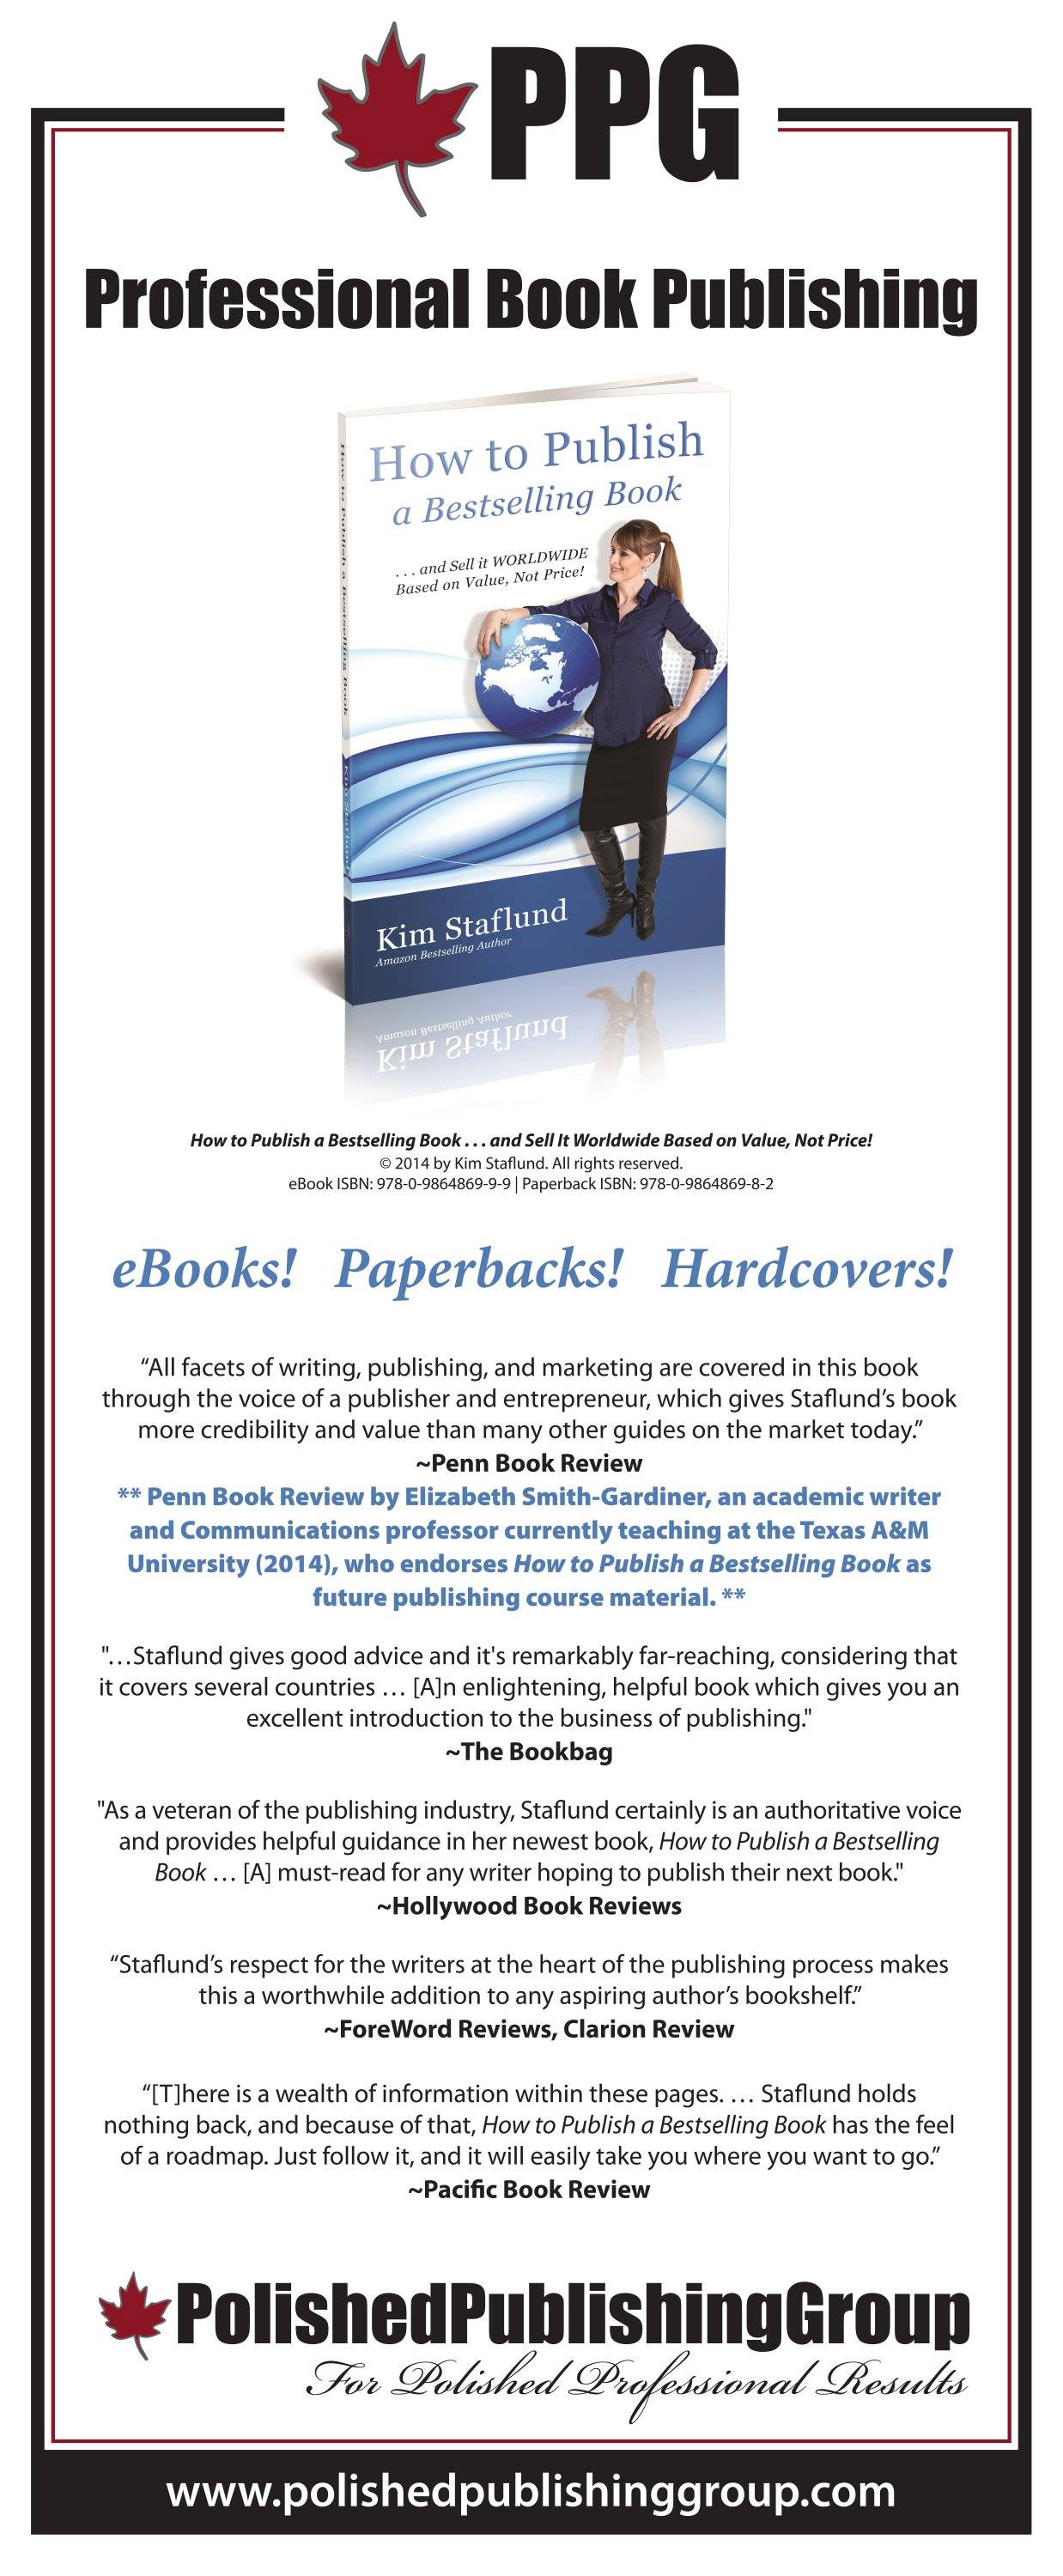 How to Publish a Bestselling Book Book Reviews.jpg